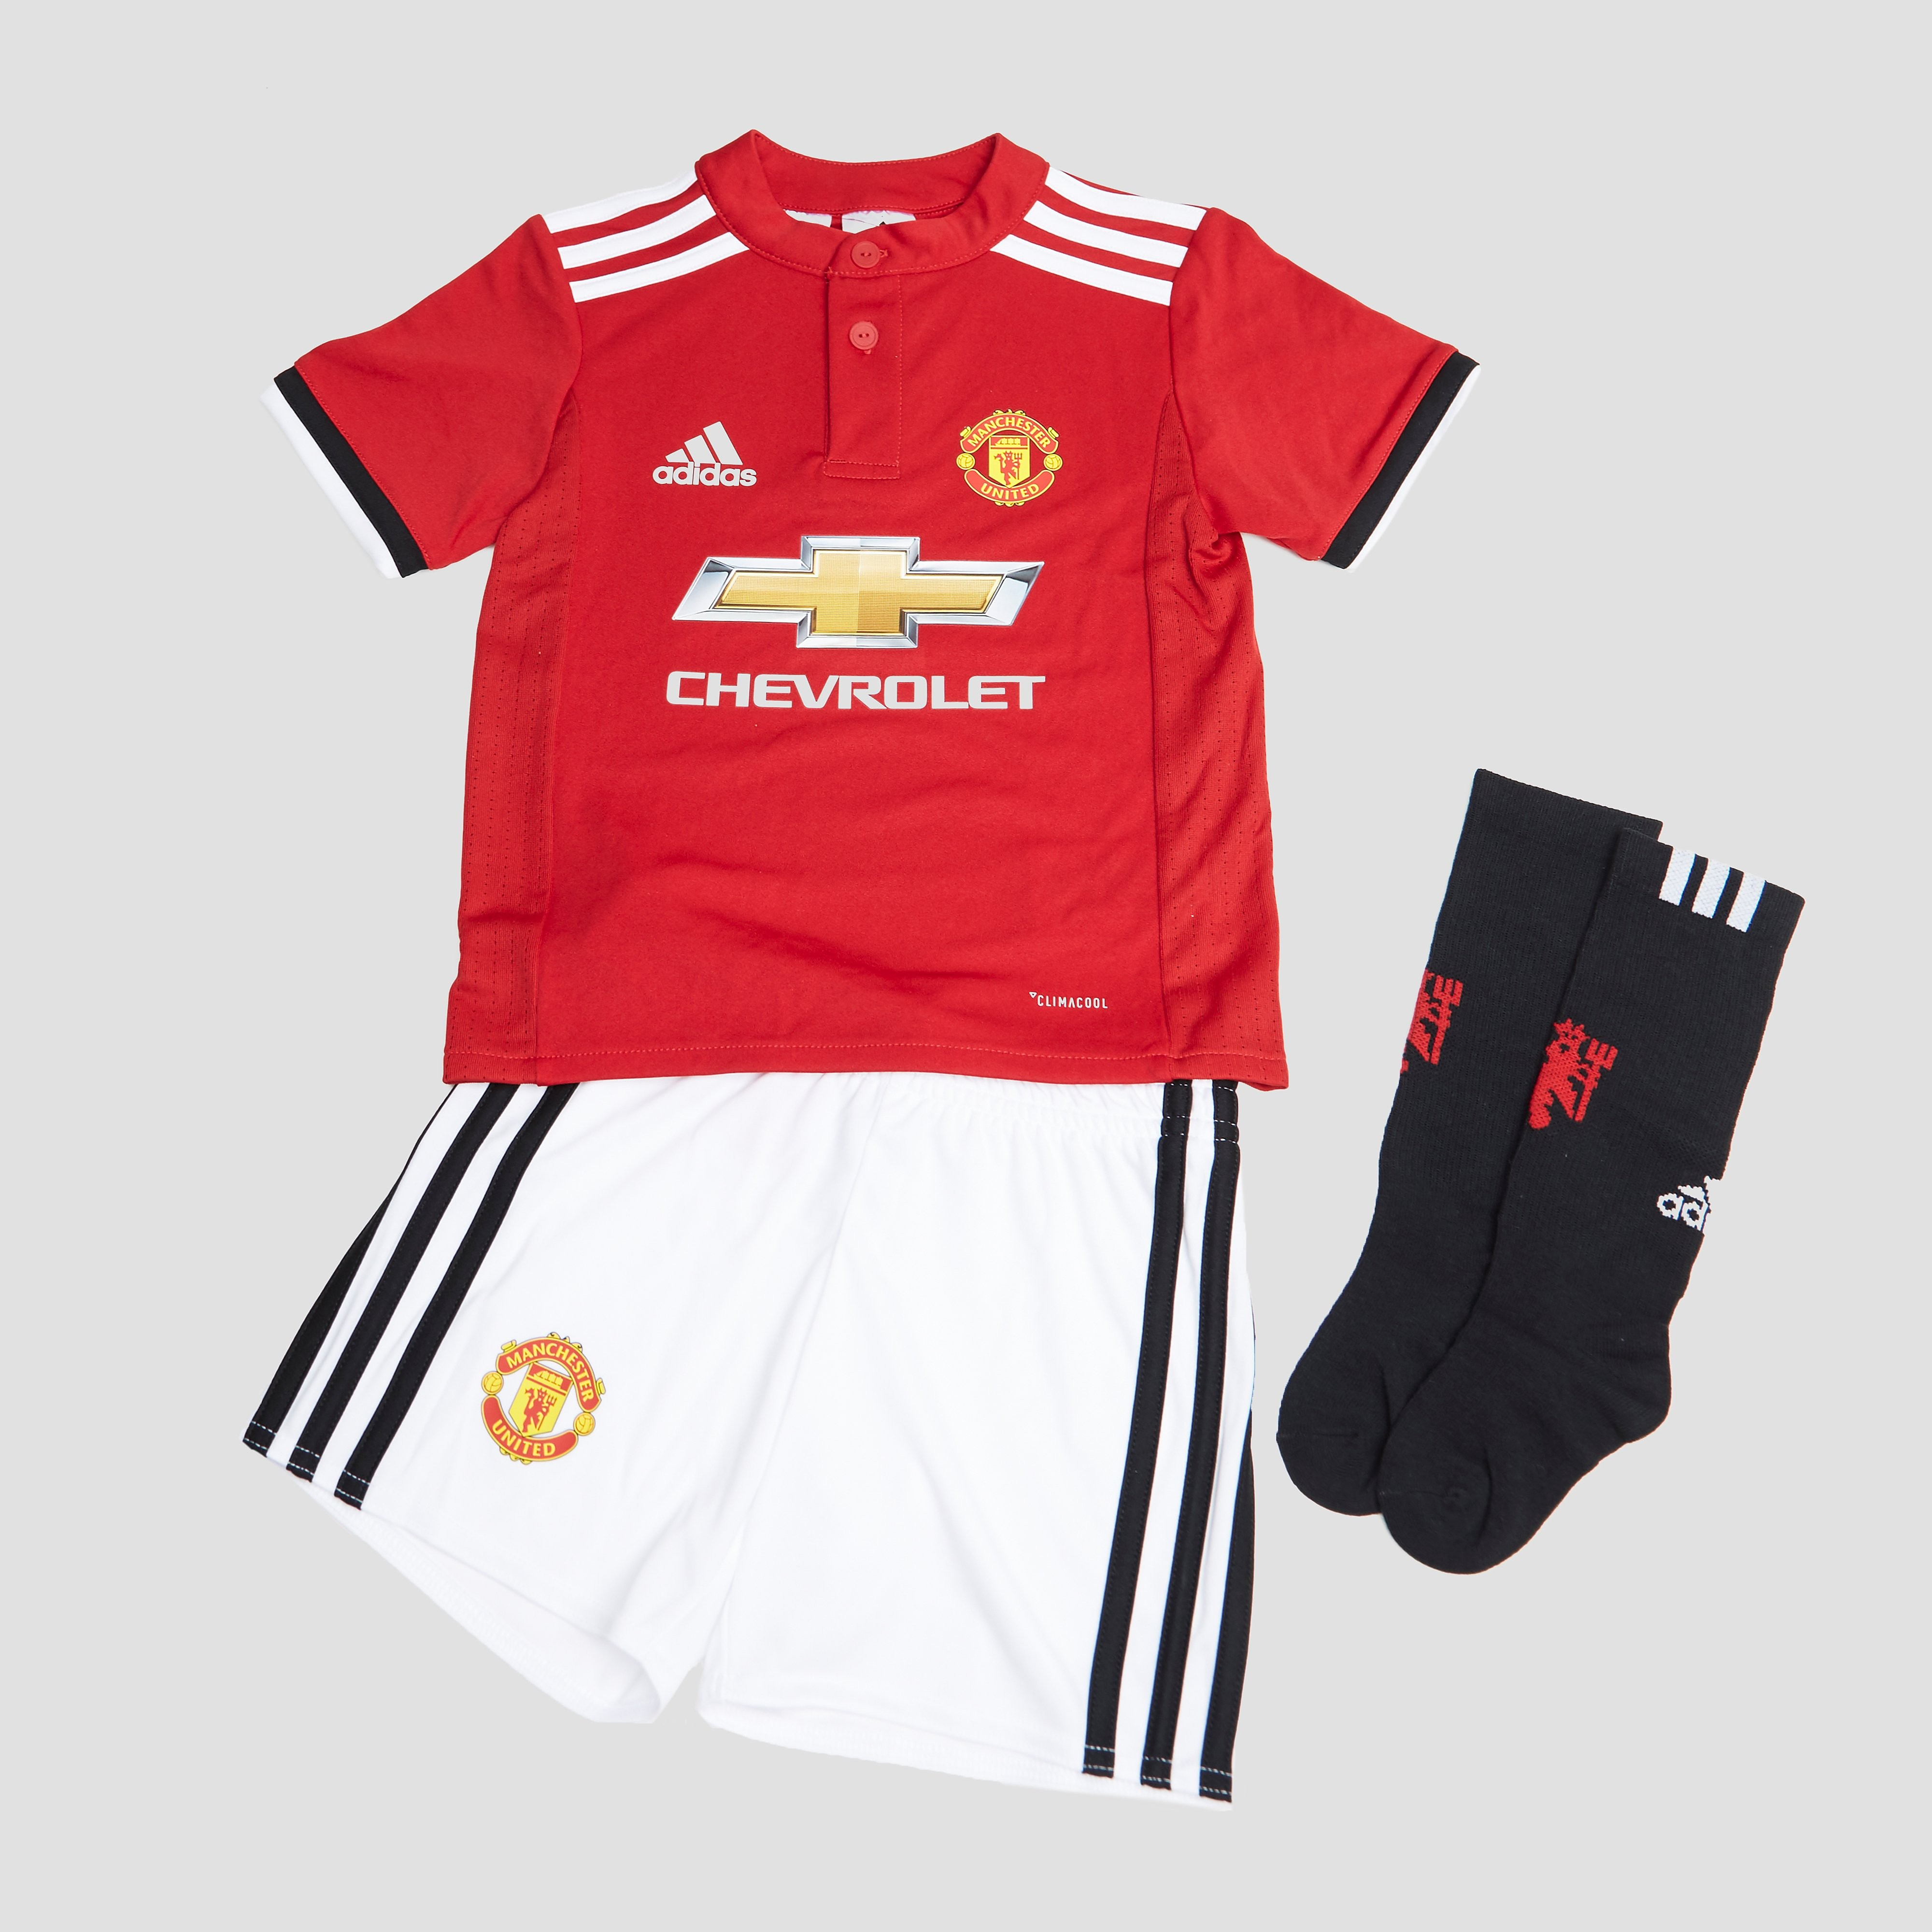 ADIDAS MANCHESTER UNITED FC THUISTENUE 17/18 ROOD/WIT KINDEREN